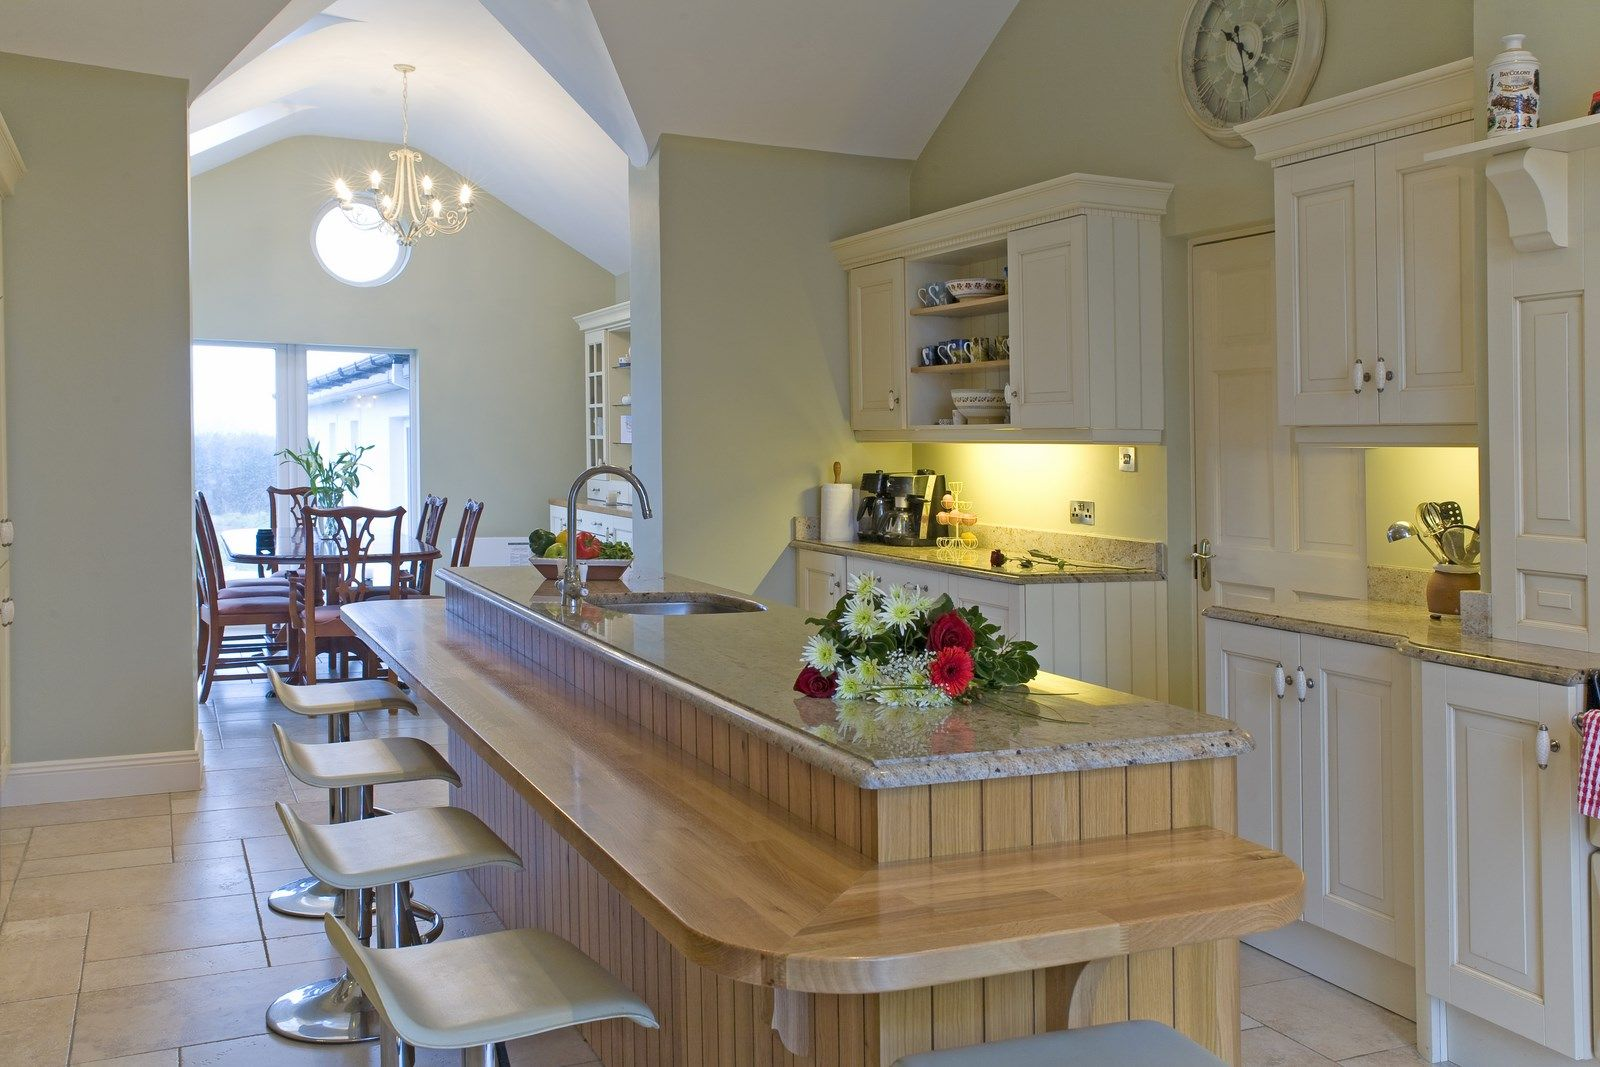 Kitchens Ireland, Kitchen direct Ireland, Dublin, Cork